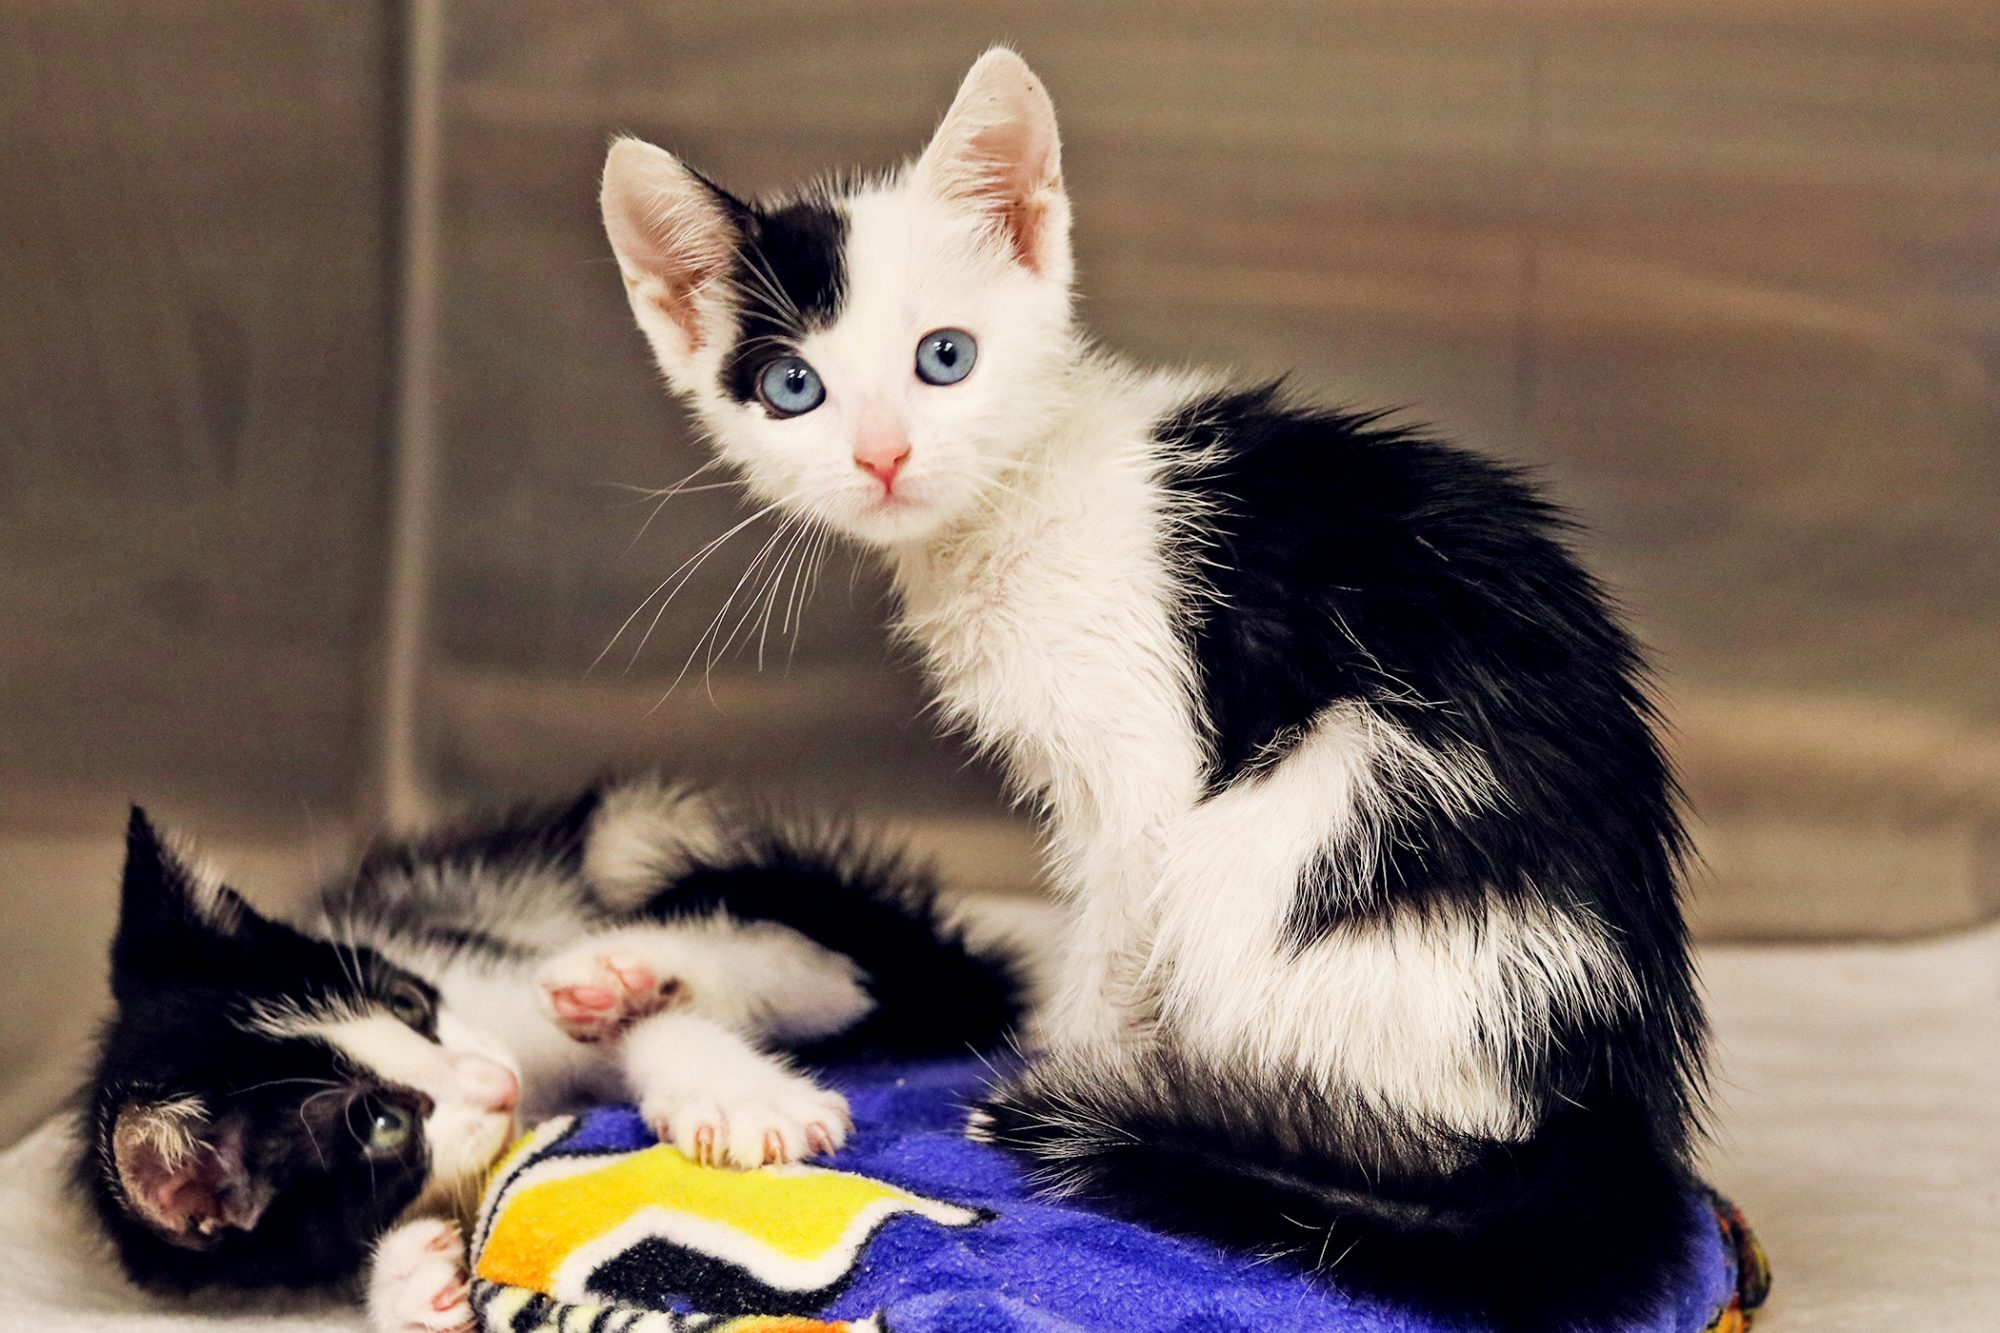 Two black and white kittens with blue eyes